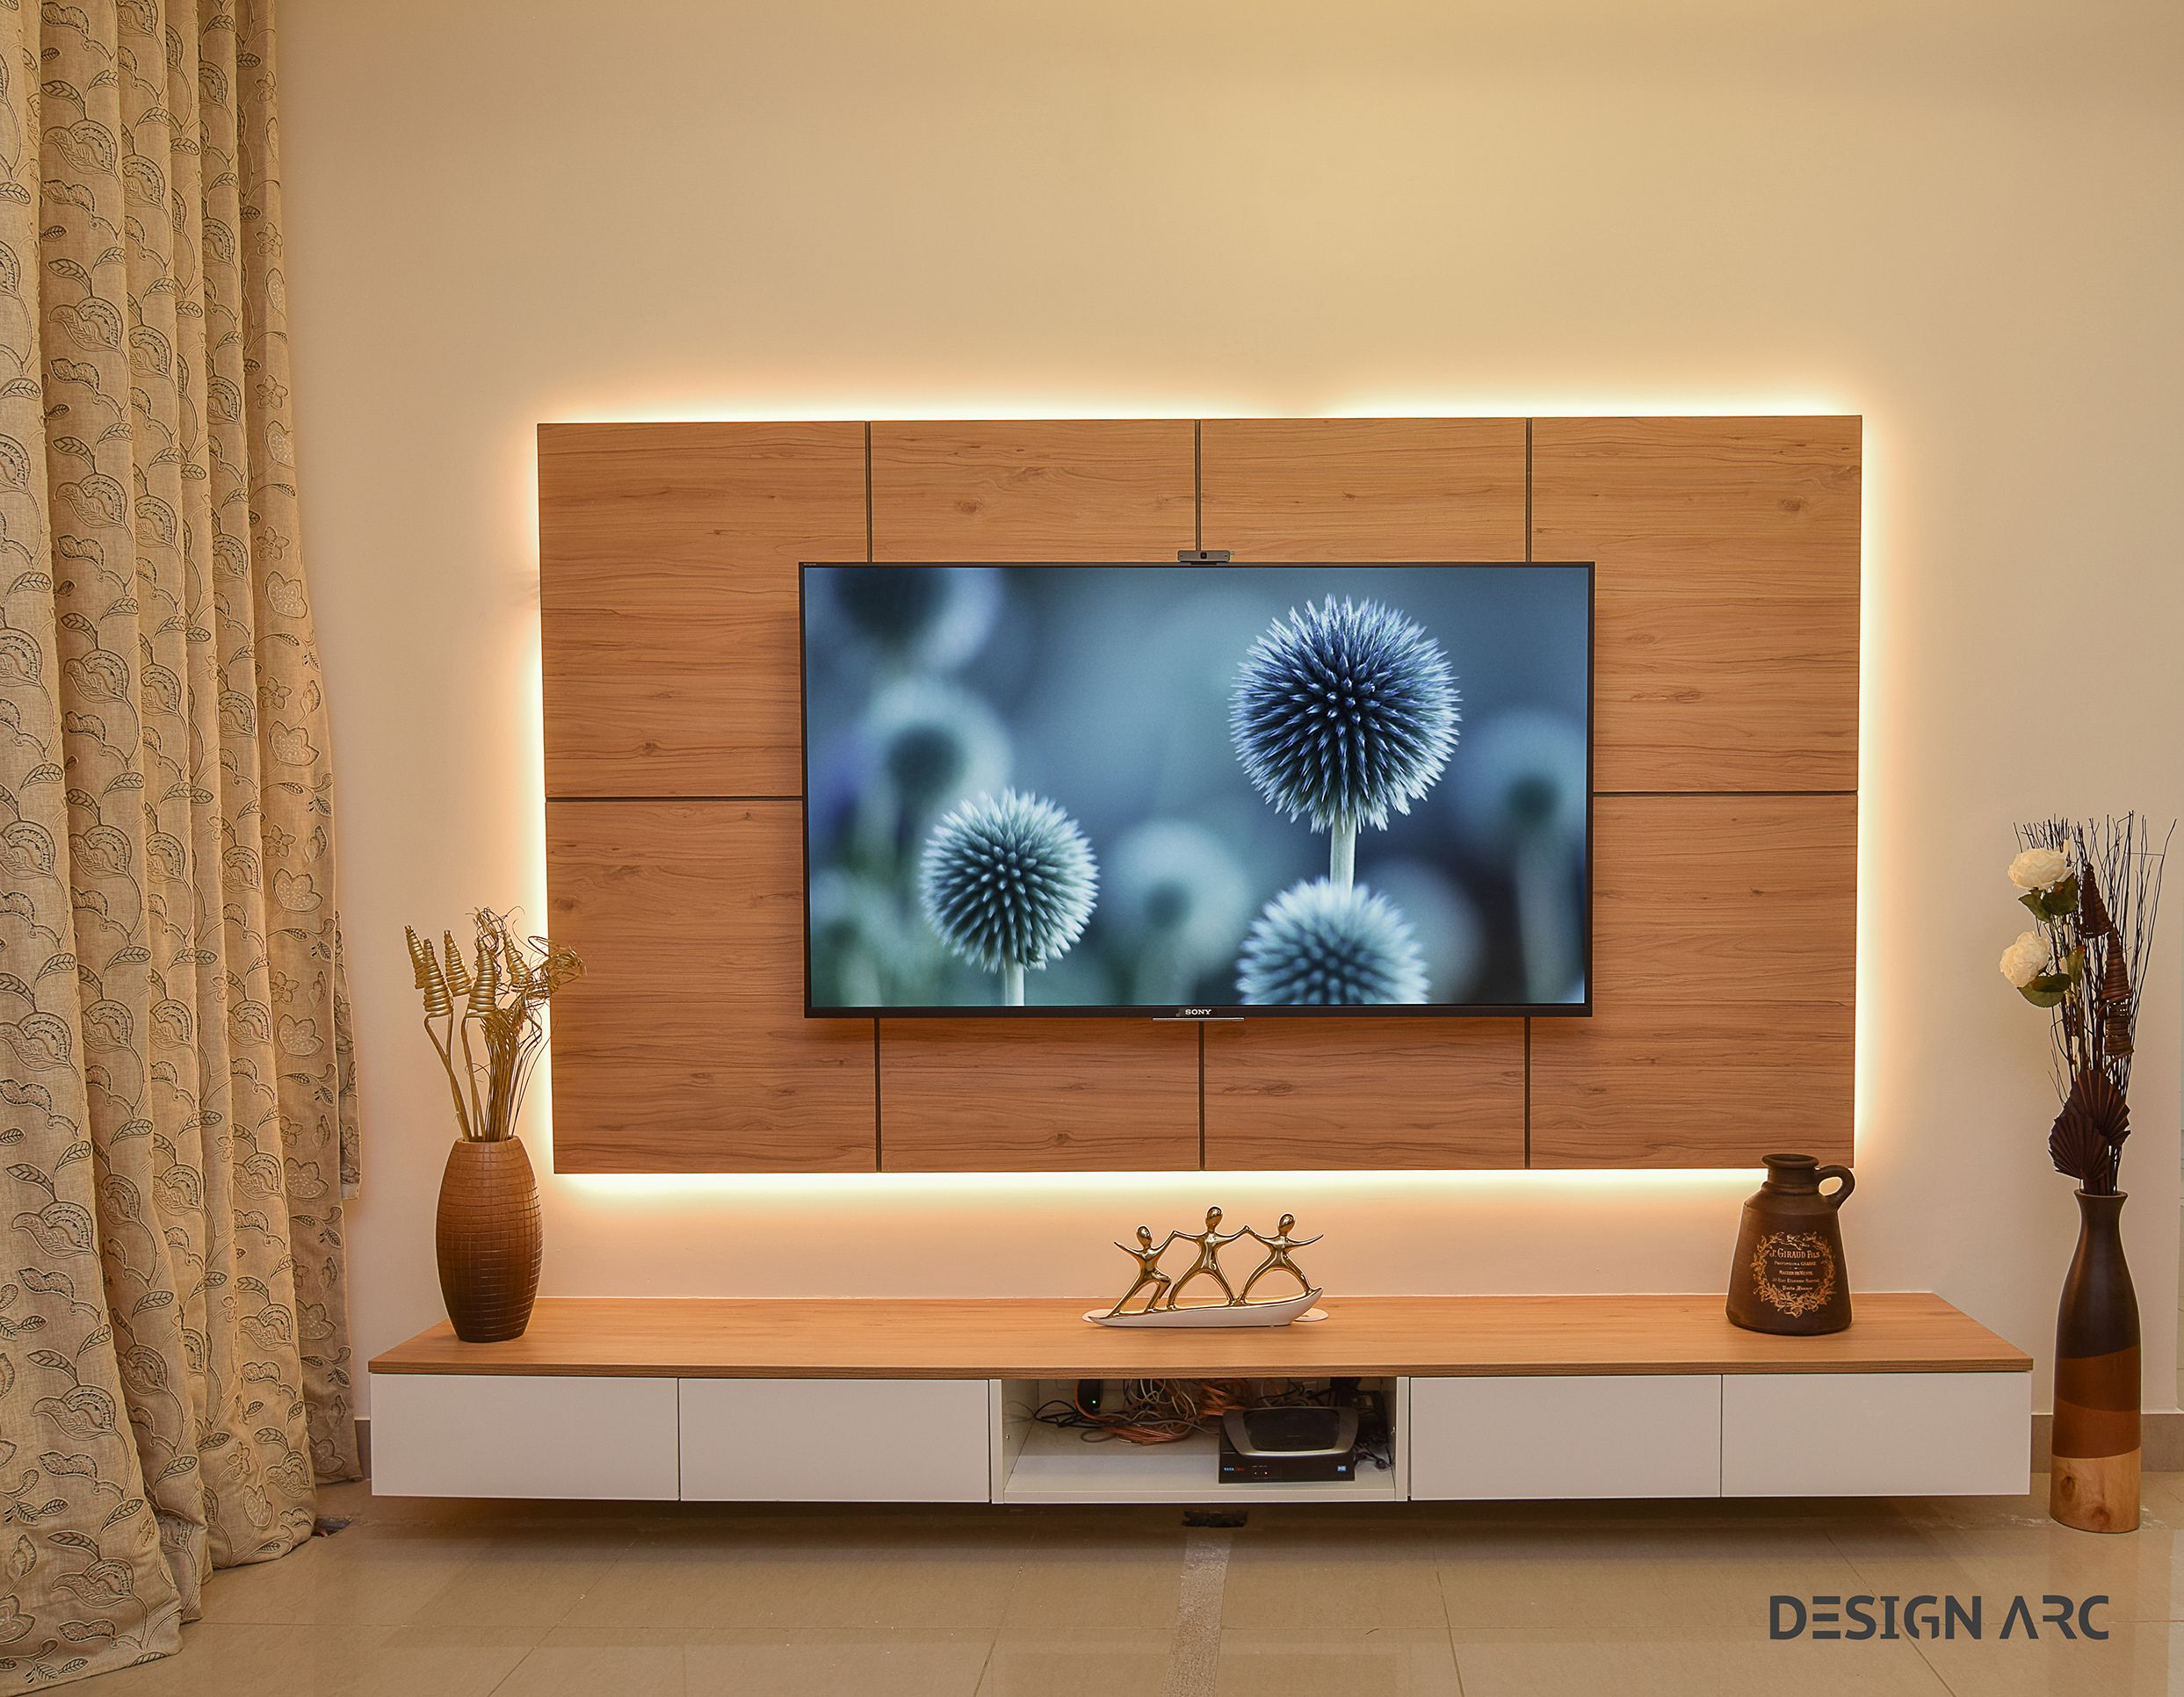 tv unit design concept apartment interior home interior on incredible tv wall design ideas for living room decor layouts of tv models id=18326